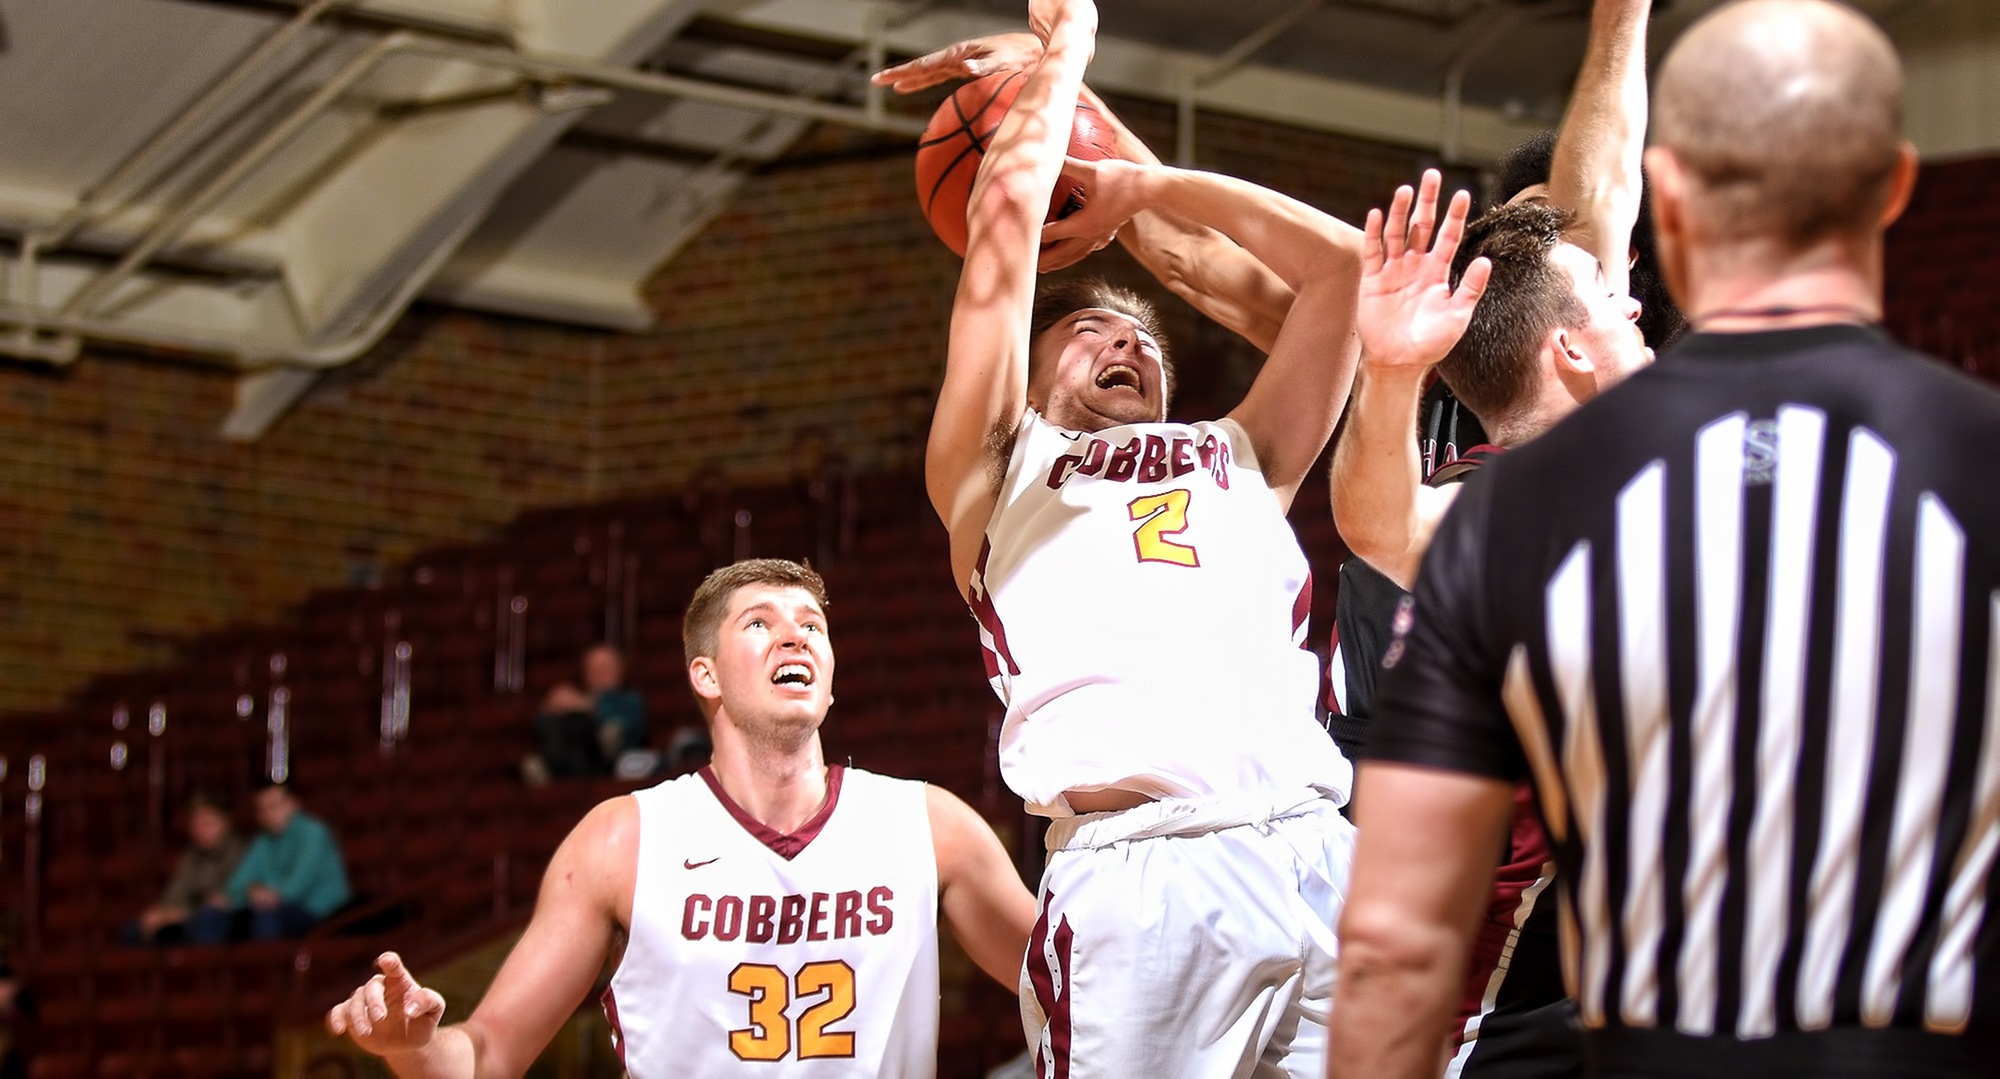 Junior Bryde Urie gets fouled on the way to the basket in the second half of the Cobbers' game with Hamline. Urie tied his career high with 25 points.